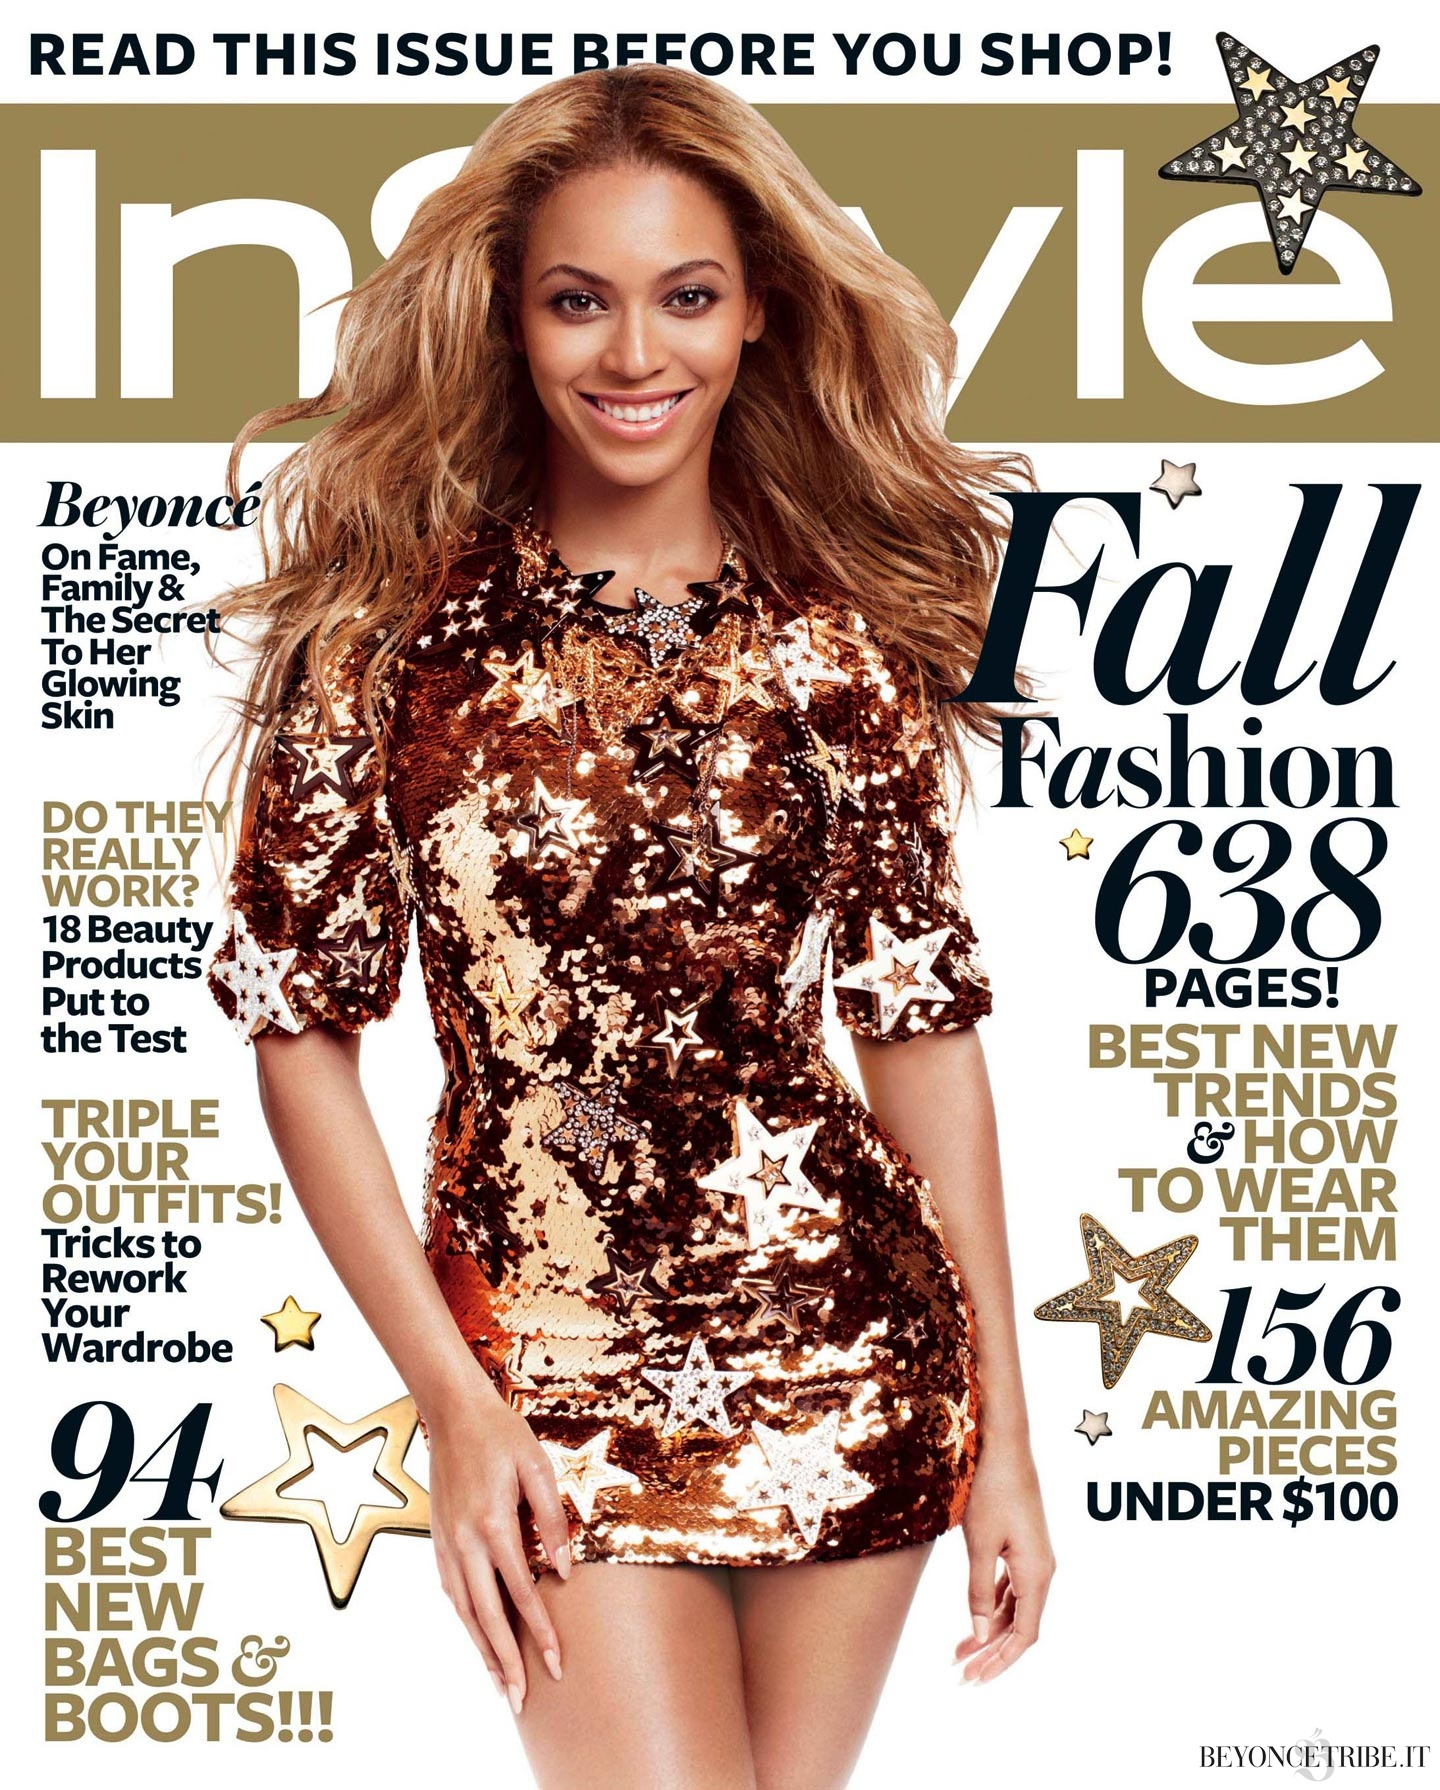 Beyoncé photoshoots Michelangelo Di Battista for InStyle Mag sep 2011 HQ